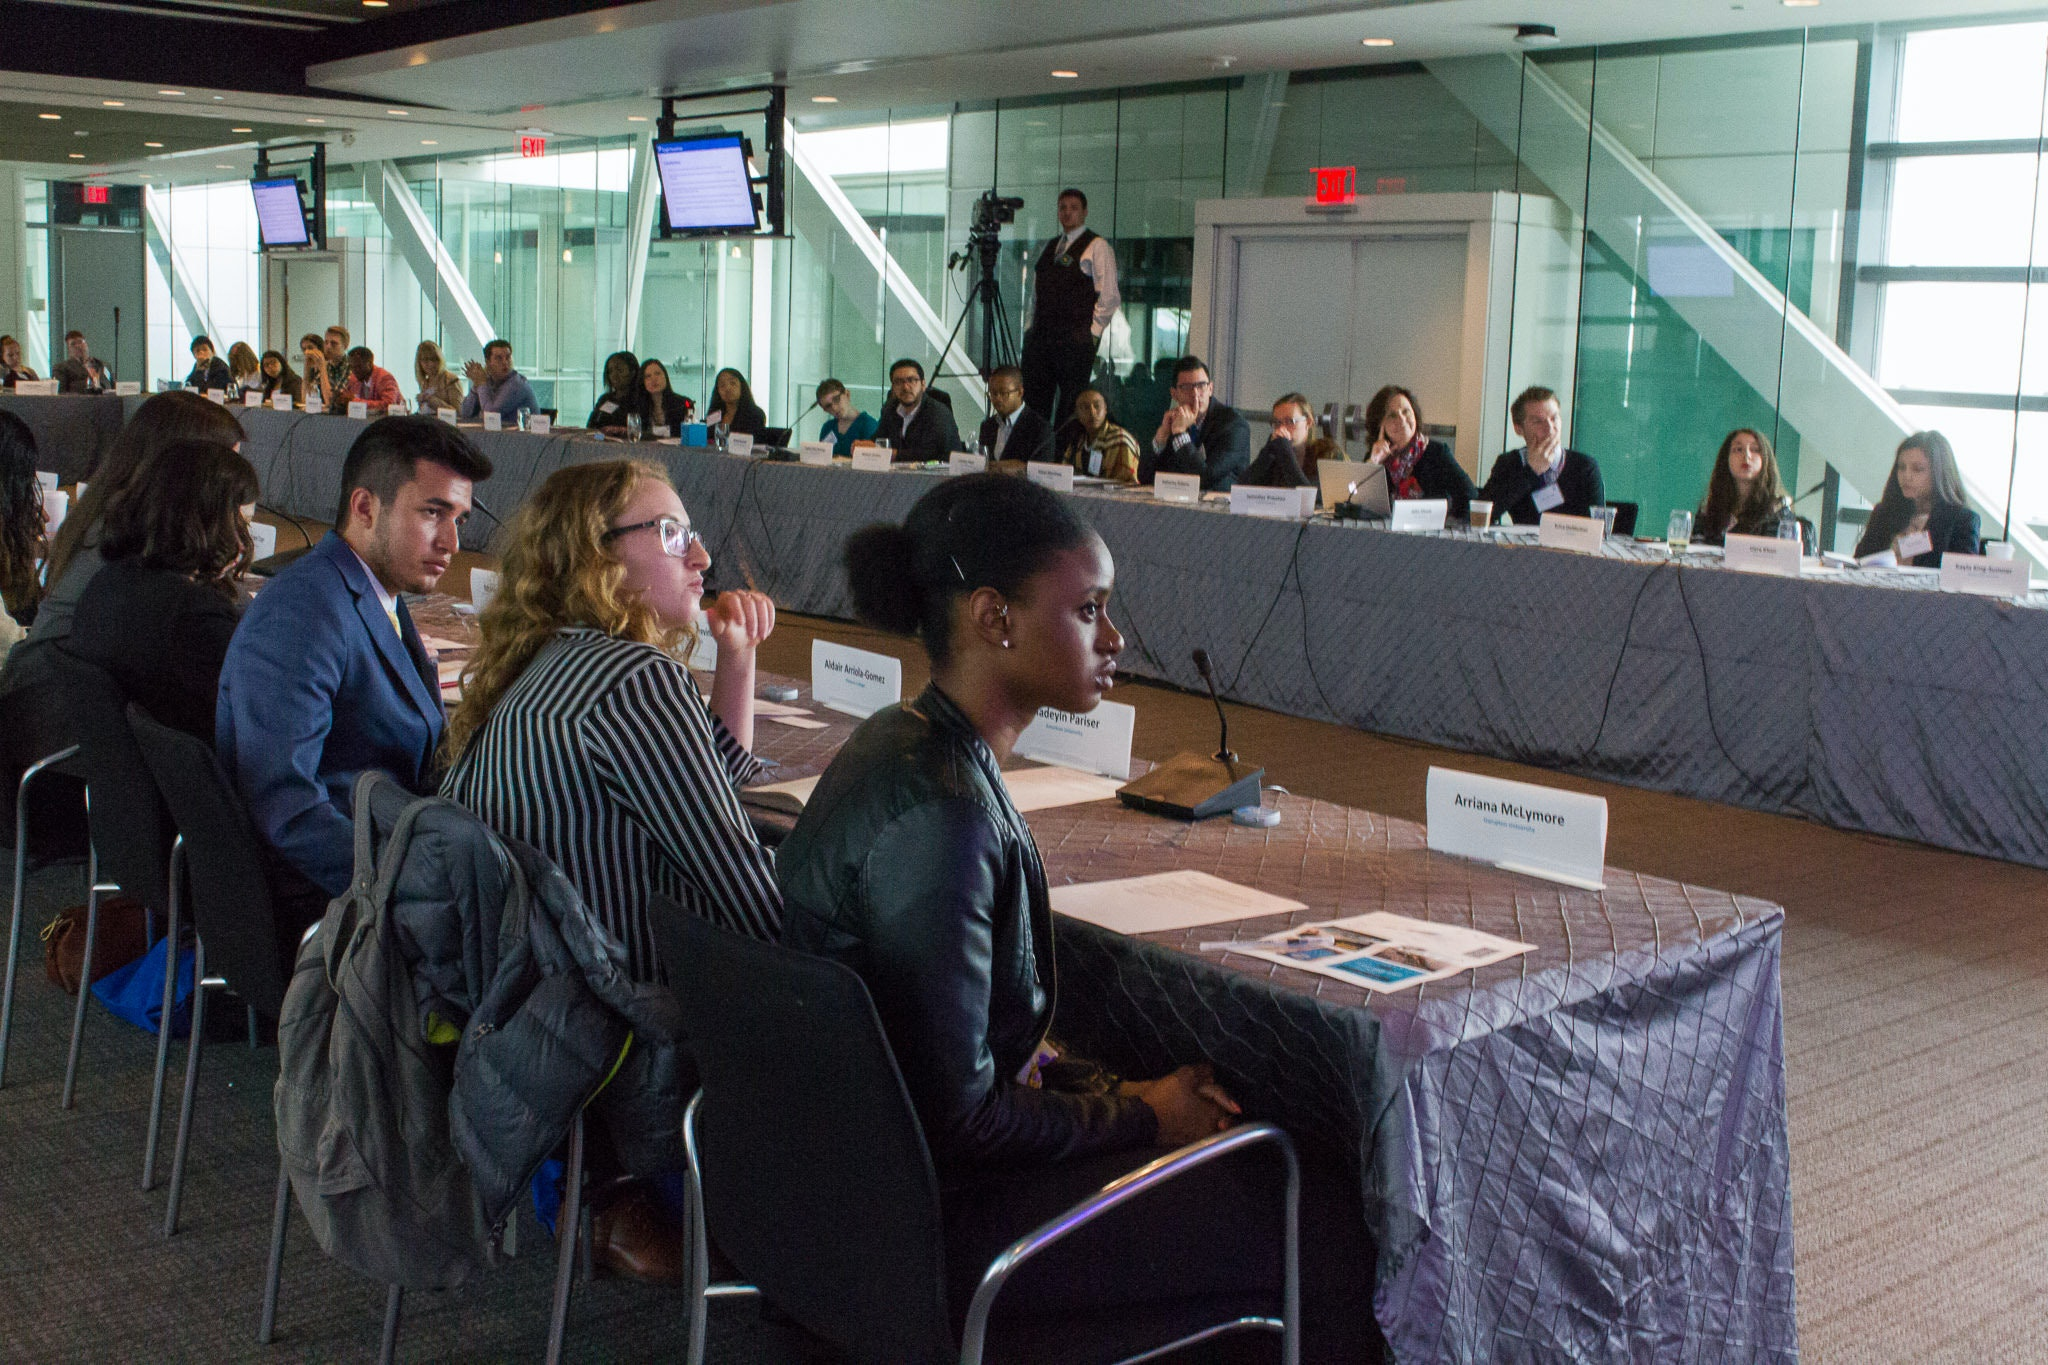 "<p>Students discuss First Amendment rights at the Newseum in Washington, D.C., on April 2. 2016, during a conference sponsored by the Newseum Institute and Knight Foundation. Photo (cc) by <a href=""https://flic.kr/p/F3maiD"">Mark Schierbecker</a> on Flickr. </p>"